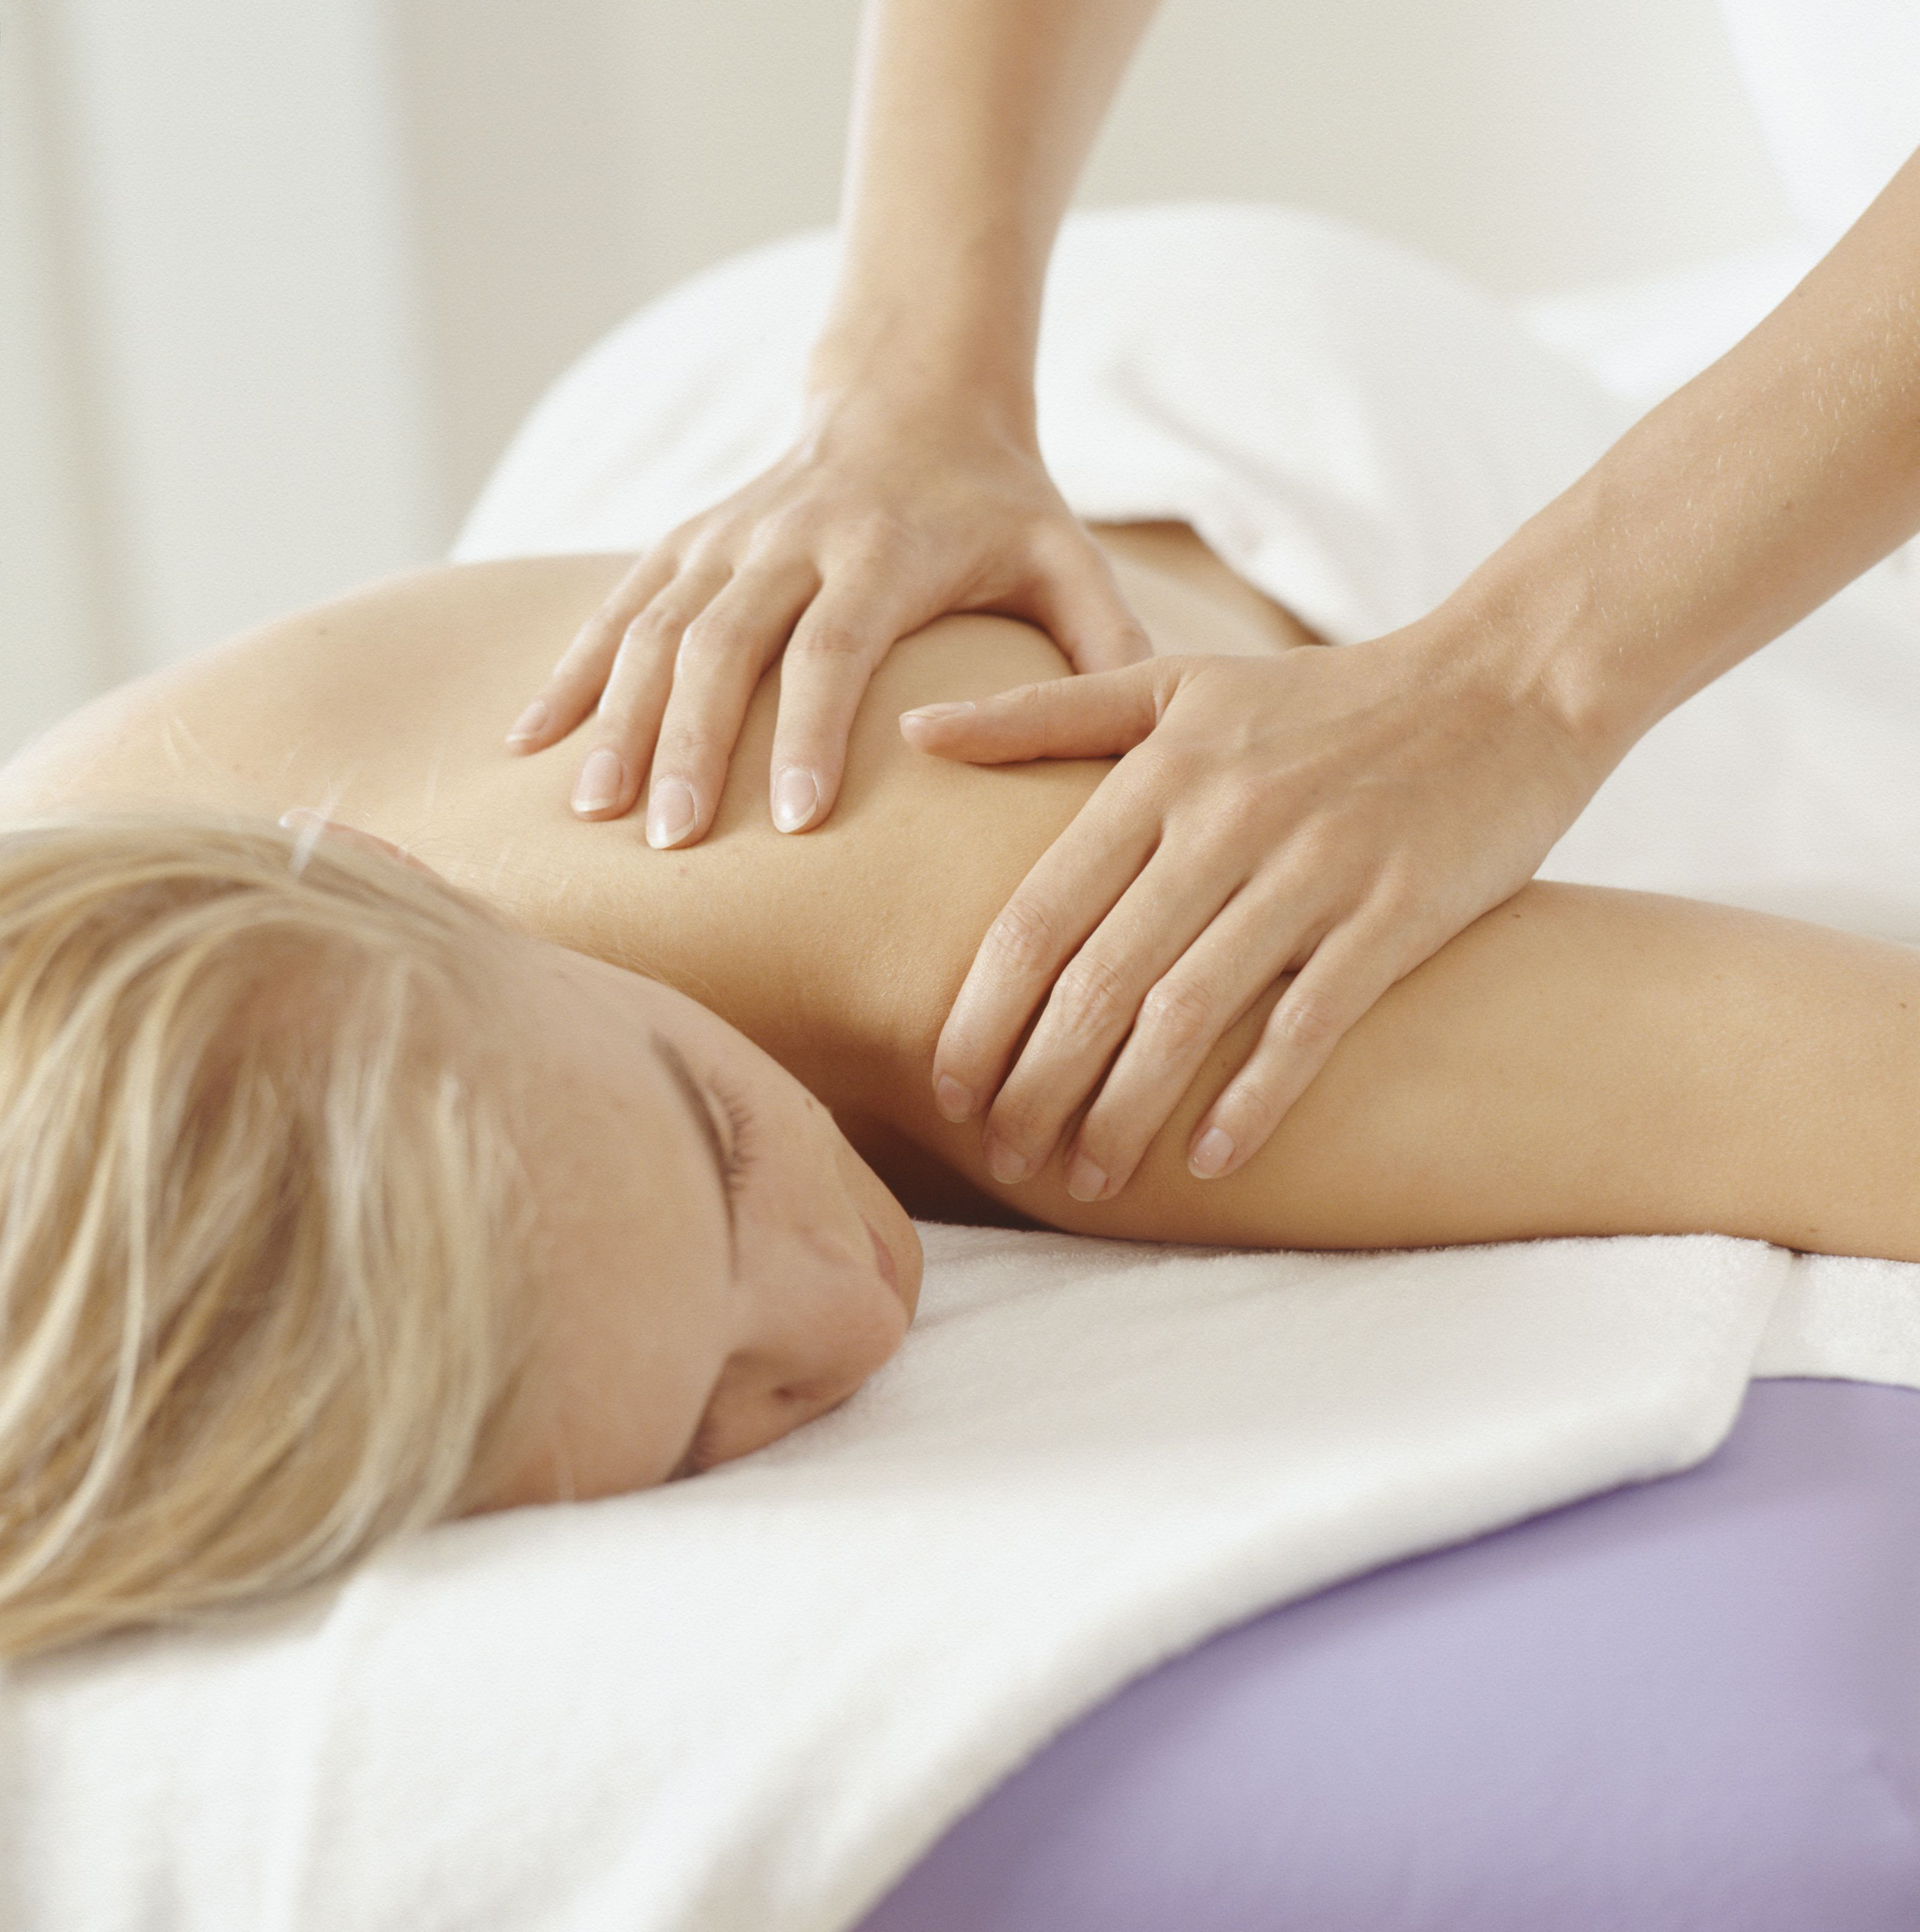 What Happens During a Couples Massage